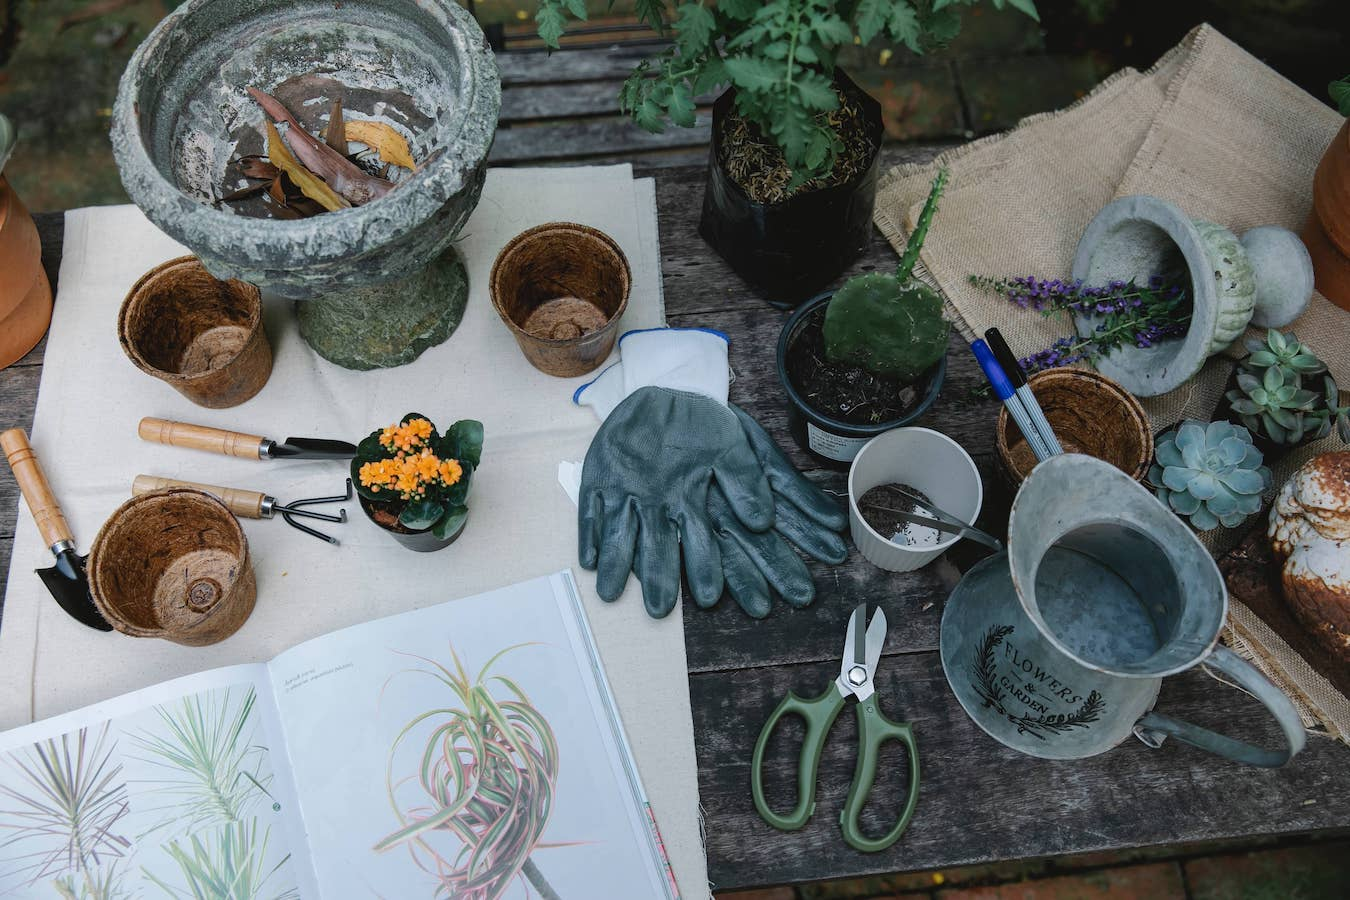 Can houseplants be recycled? Recycle pots. Pots of different materials and tools on a table